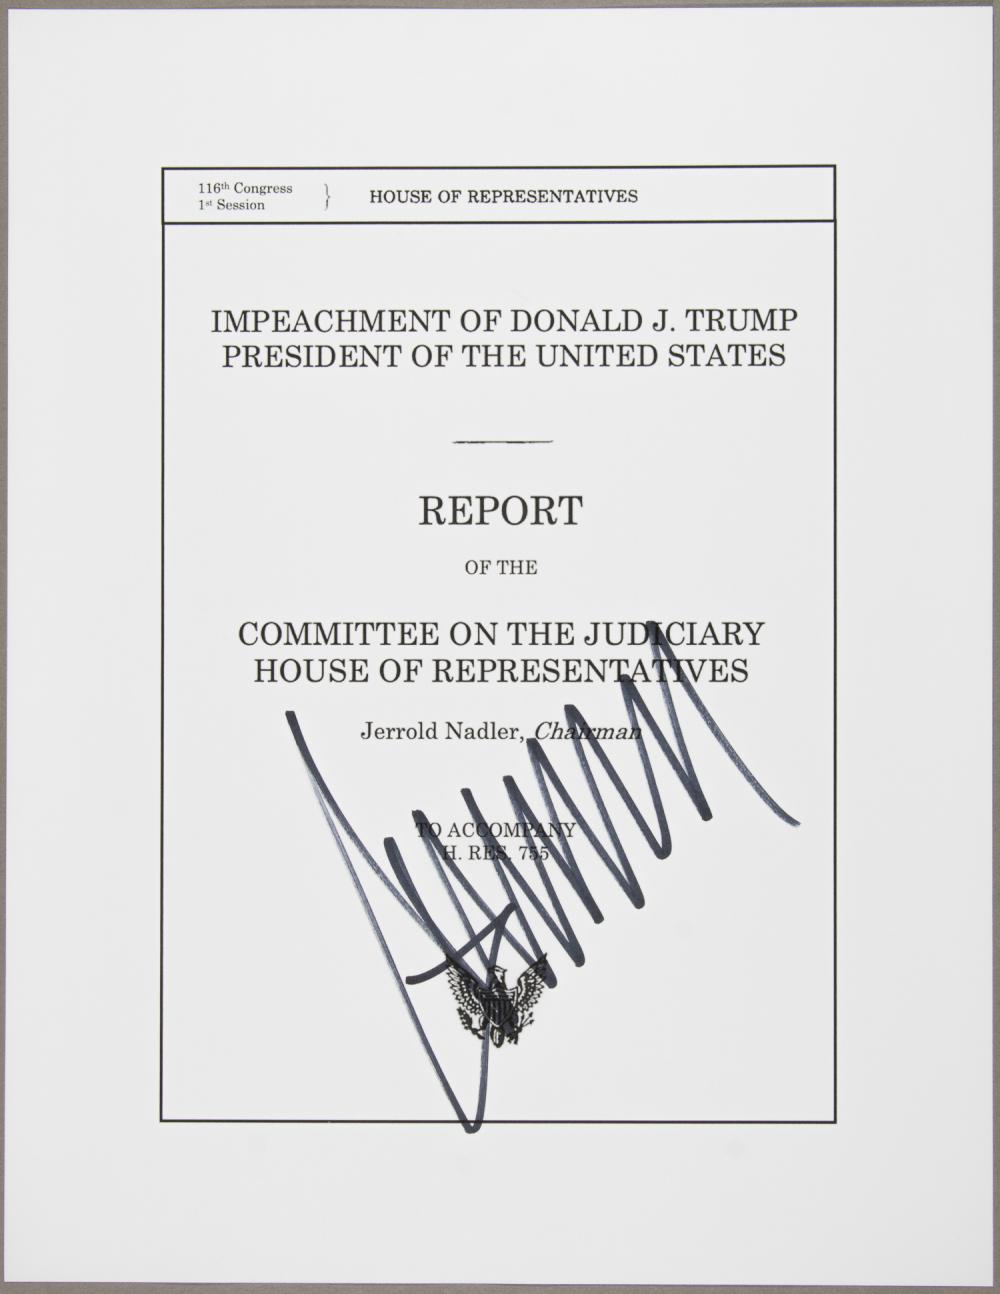 DONALD TRUMP SIGNED IMPEACHMENT PROCEEDINGS COVER SHEET